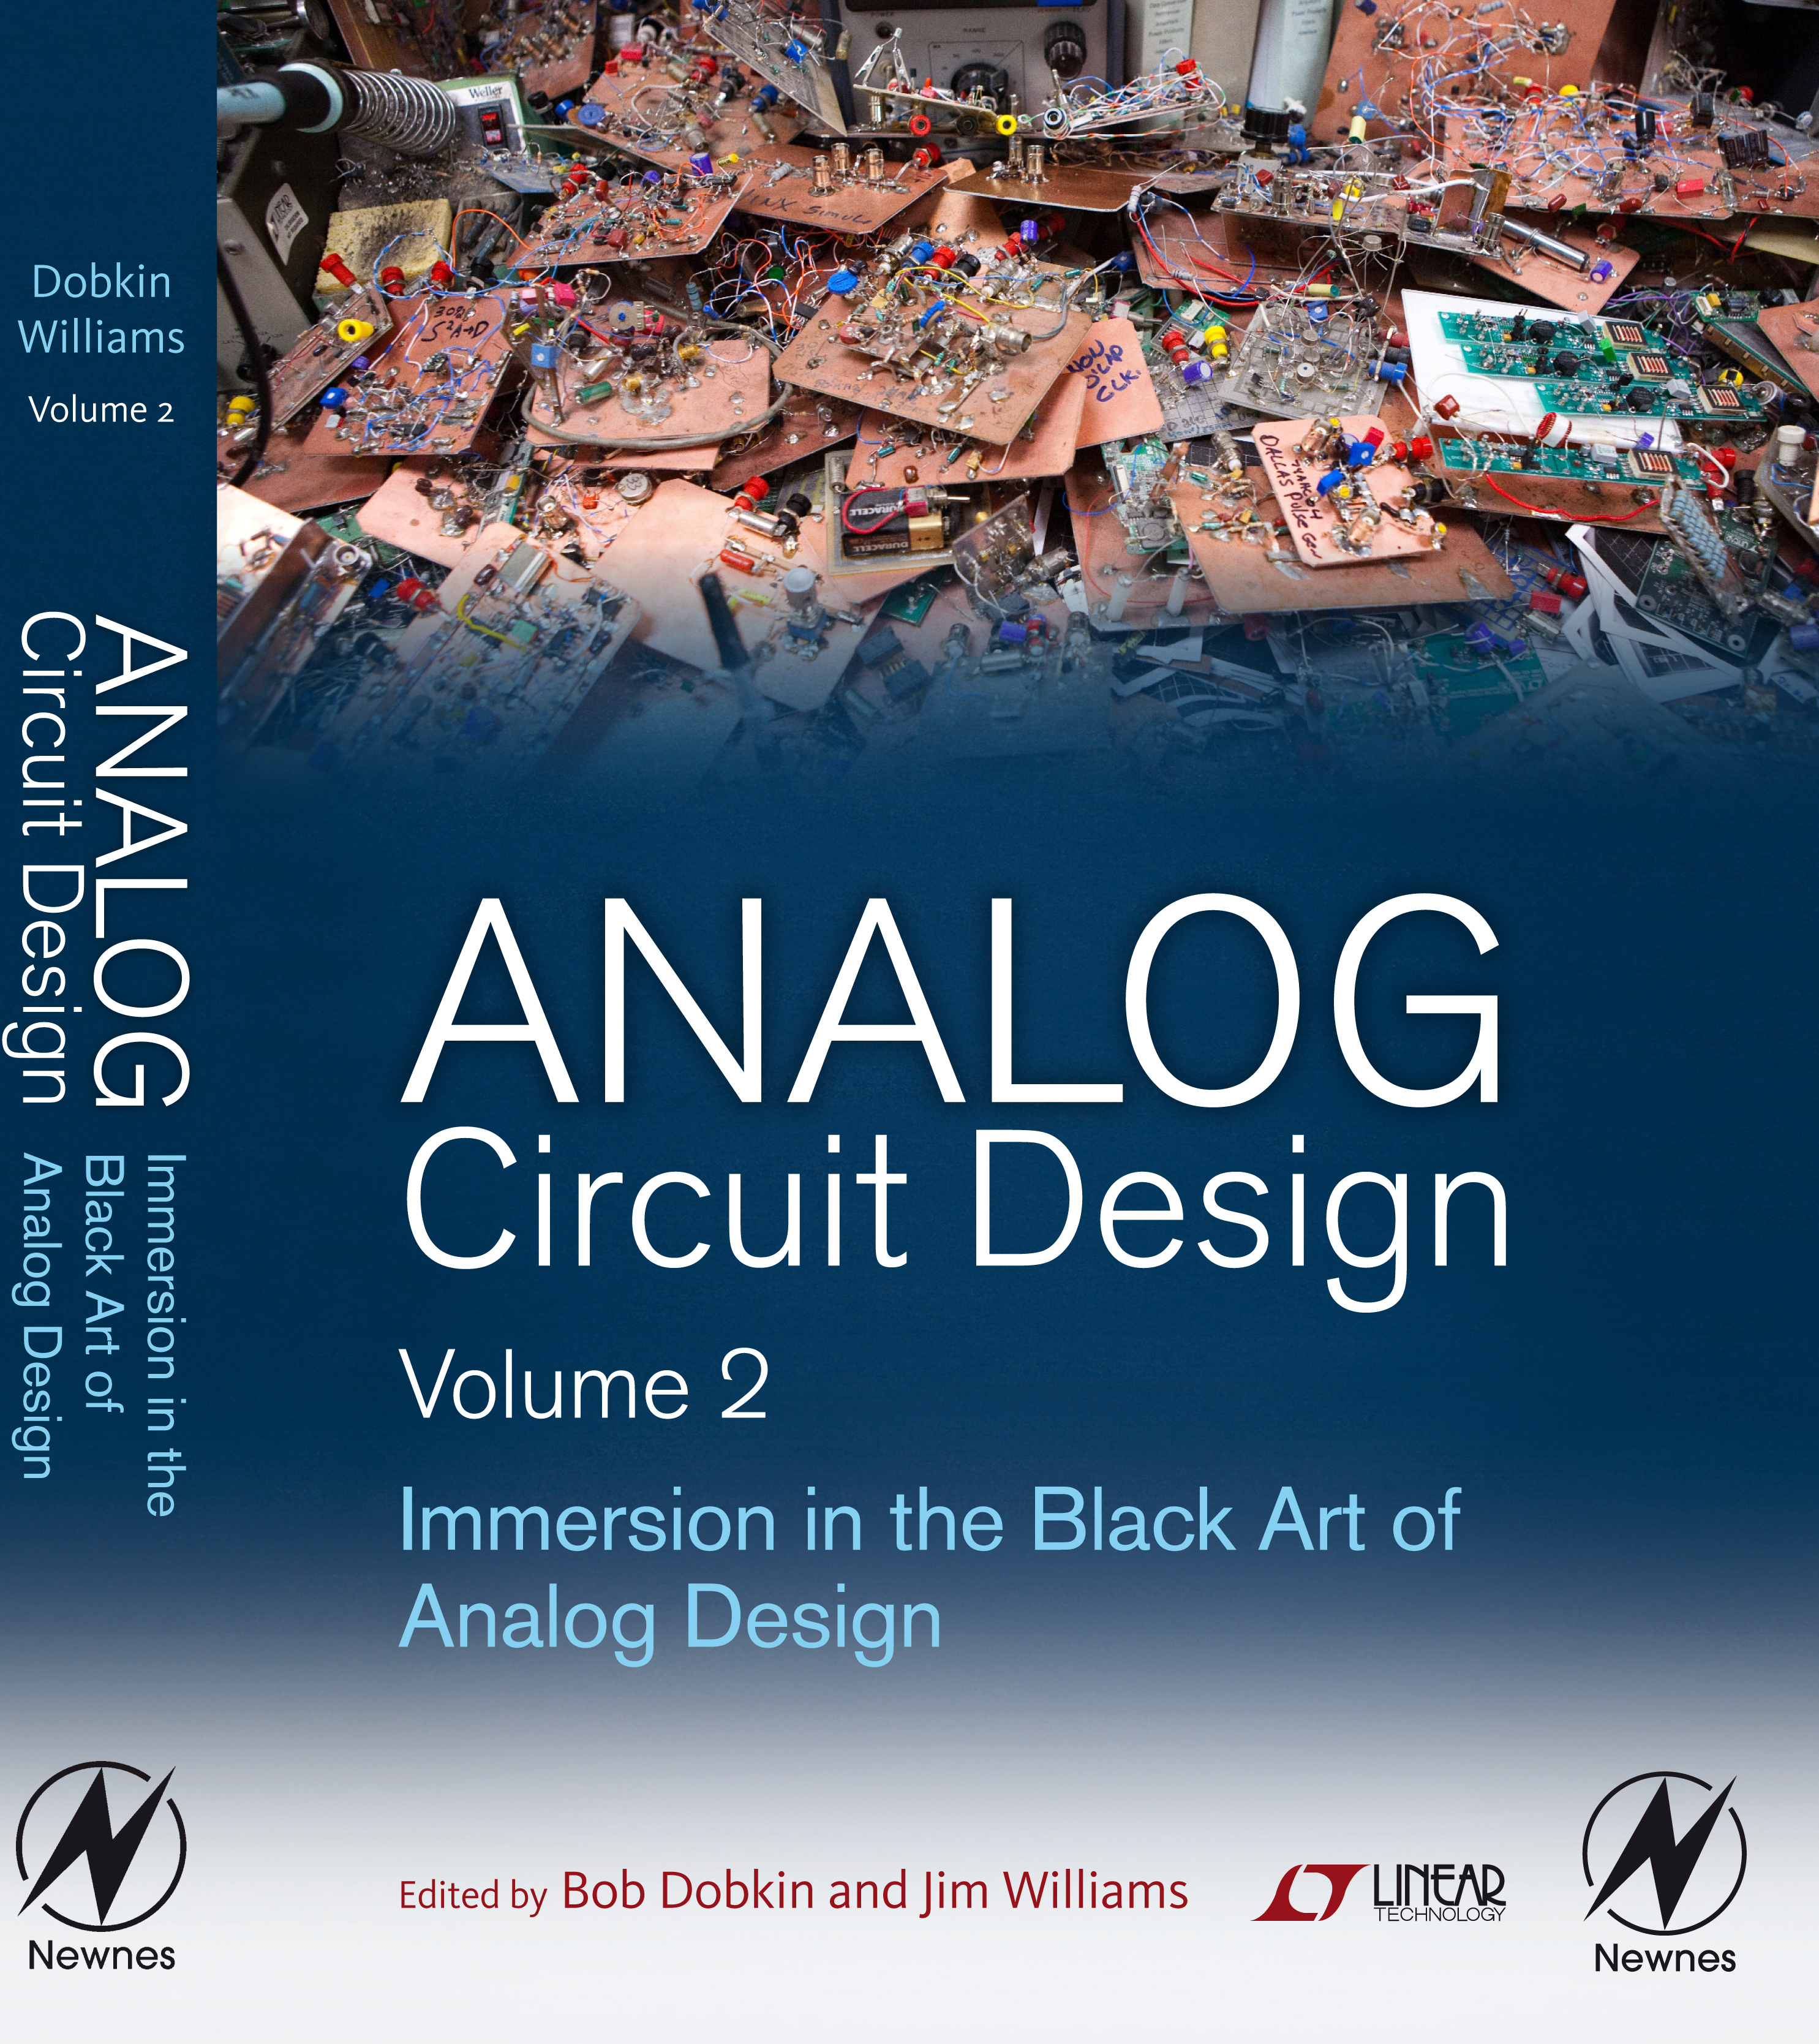 Analog Circuit design. Dobkin, Williams